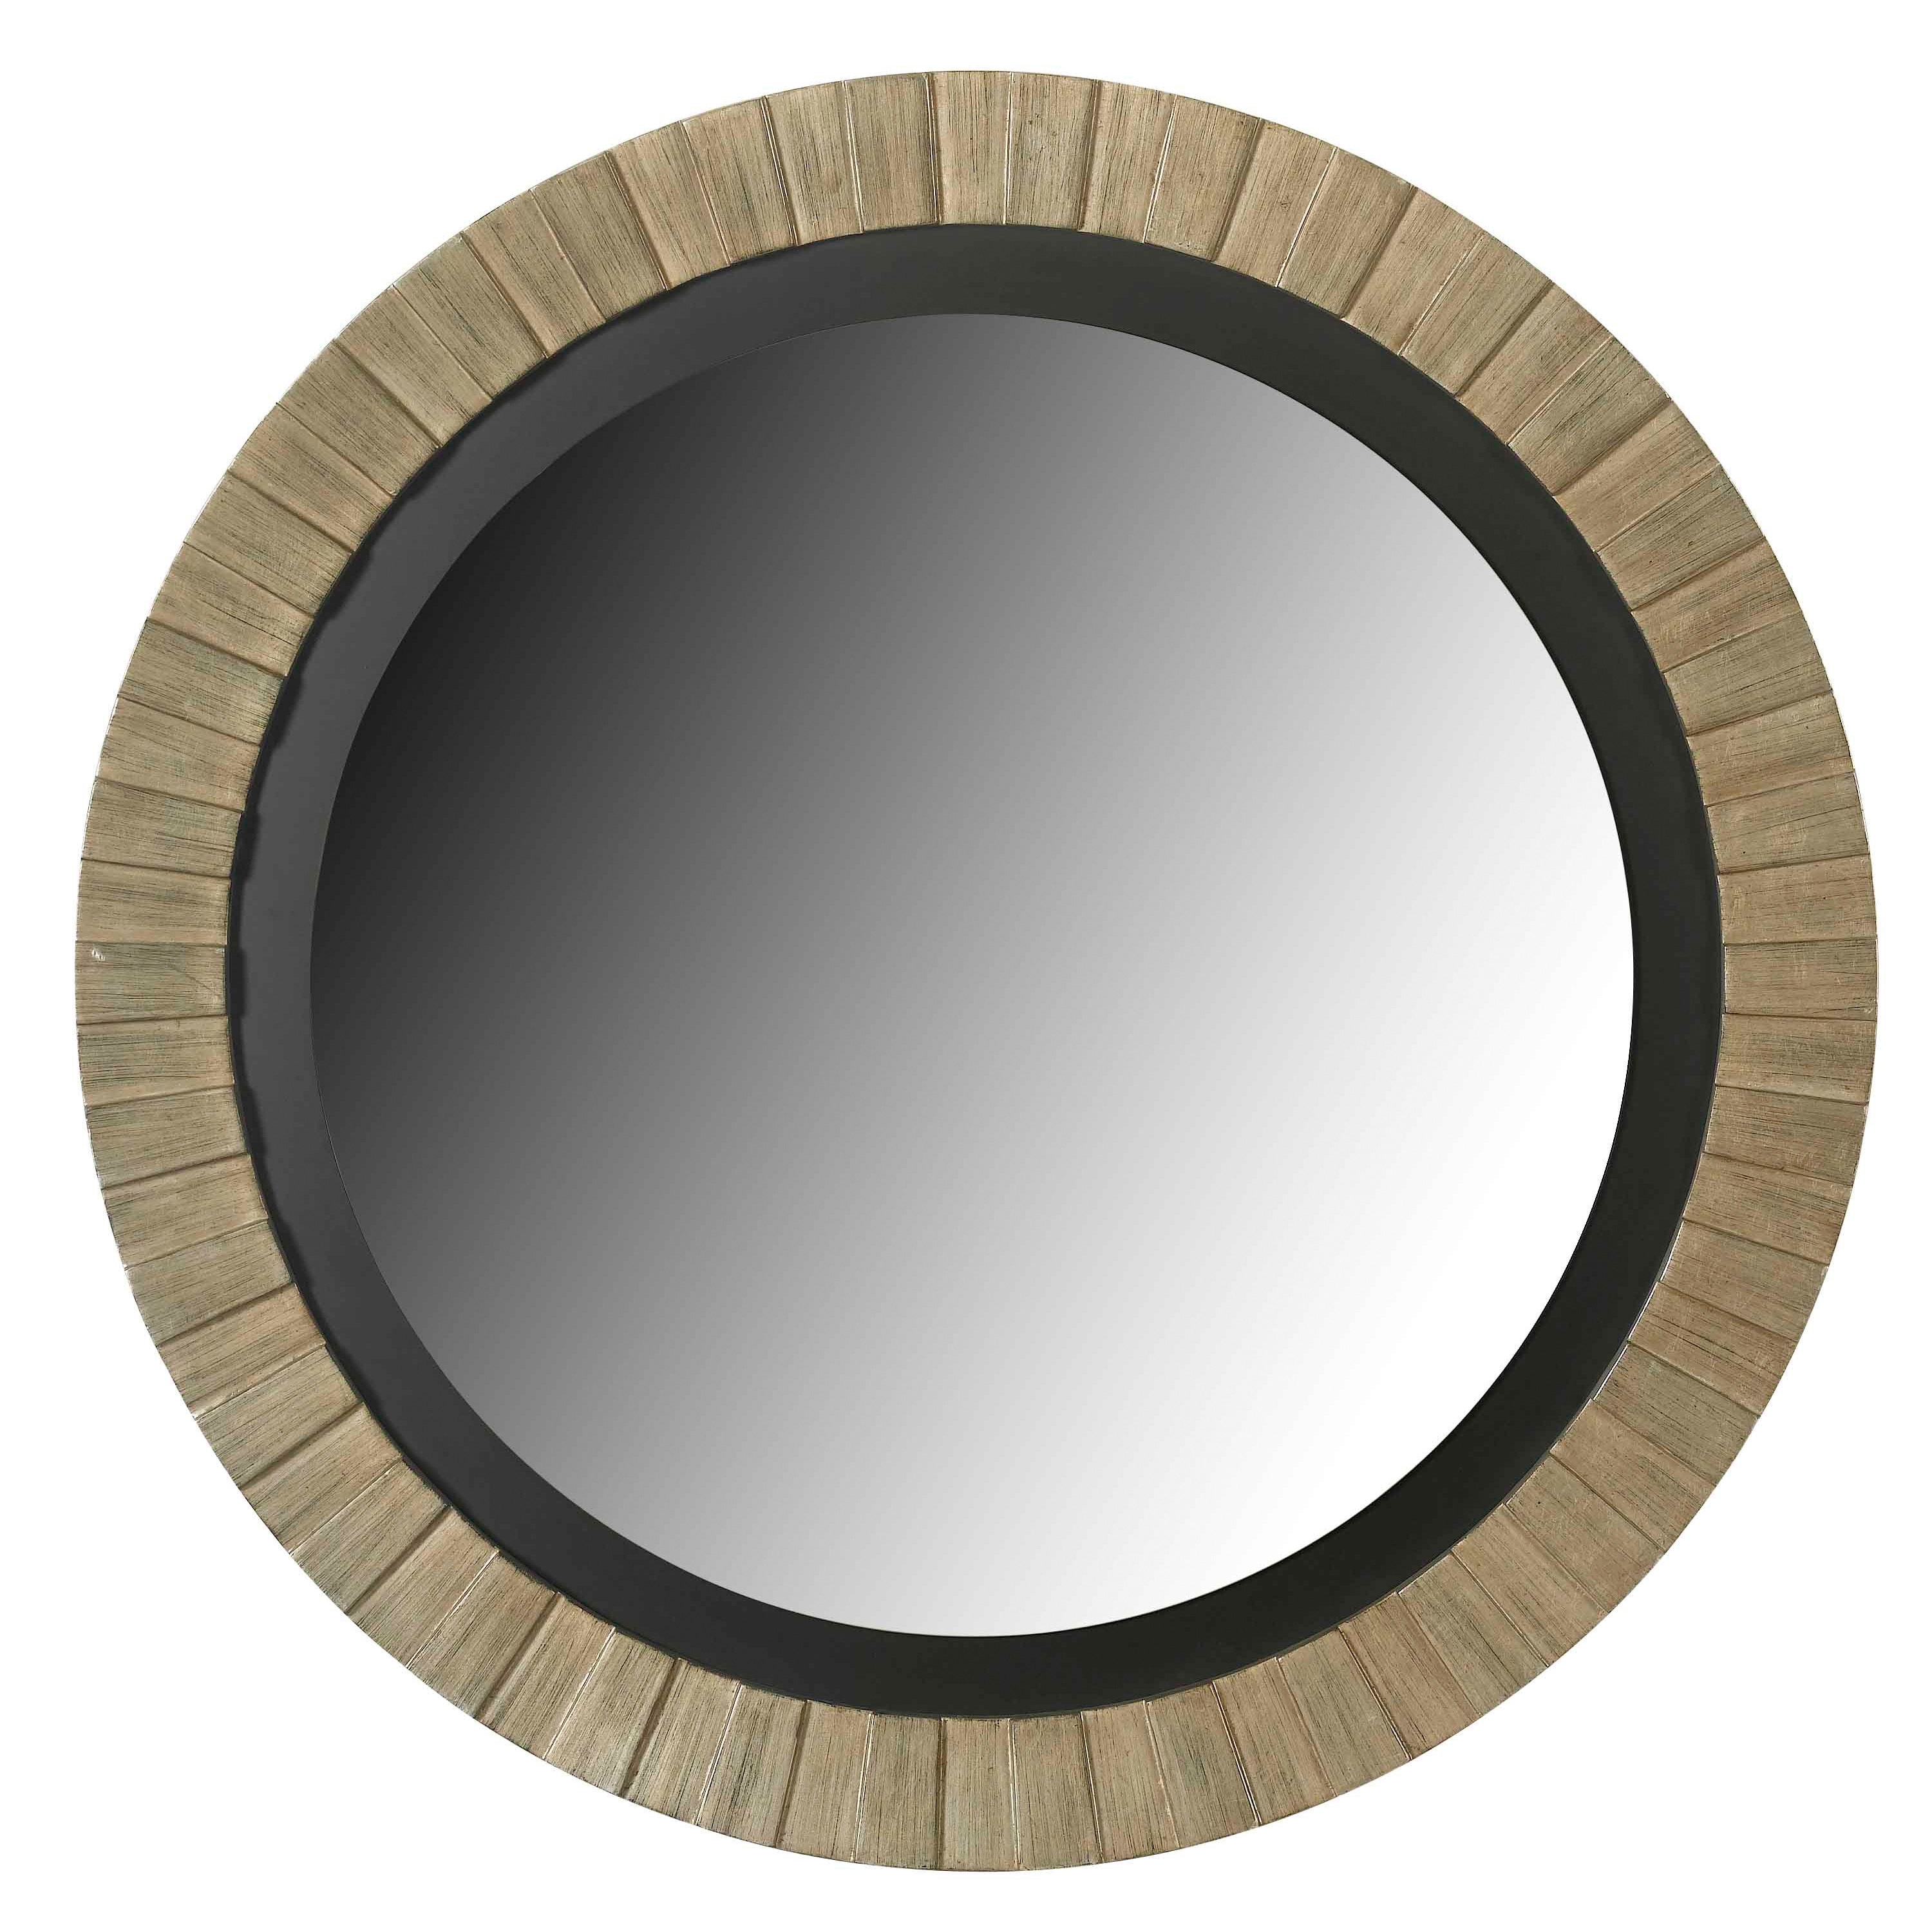 glades round antique silver wall mirror overstock shopping great deals on design craft mirrors. Black Bedroom Furniture Sets. Home Design Ideas